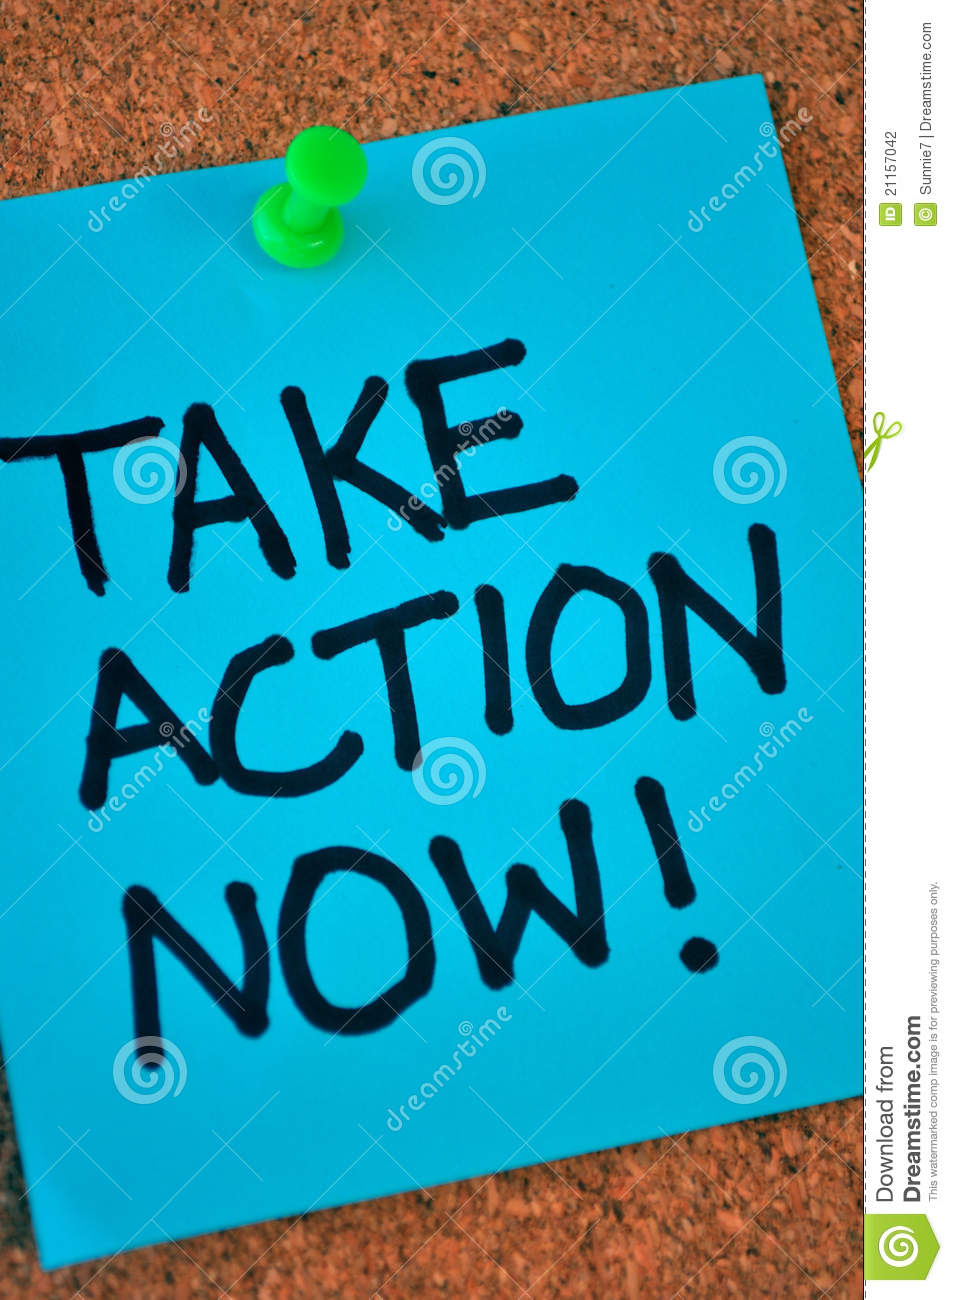 Take Action Now Note On Pinboard Stock Photo  Image of marker aspirations 21157042